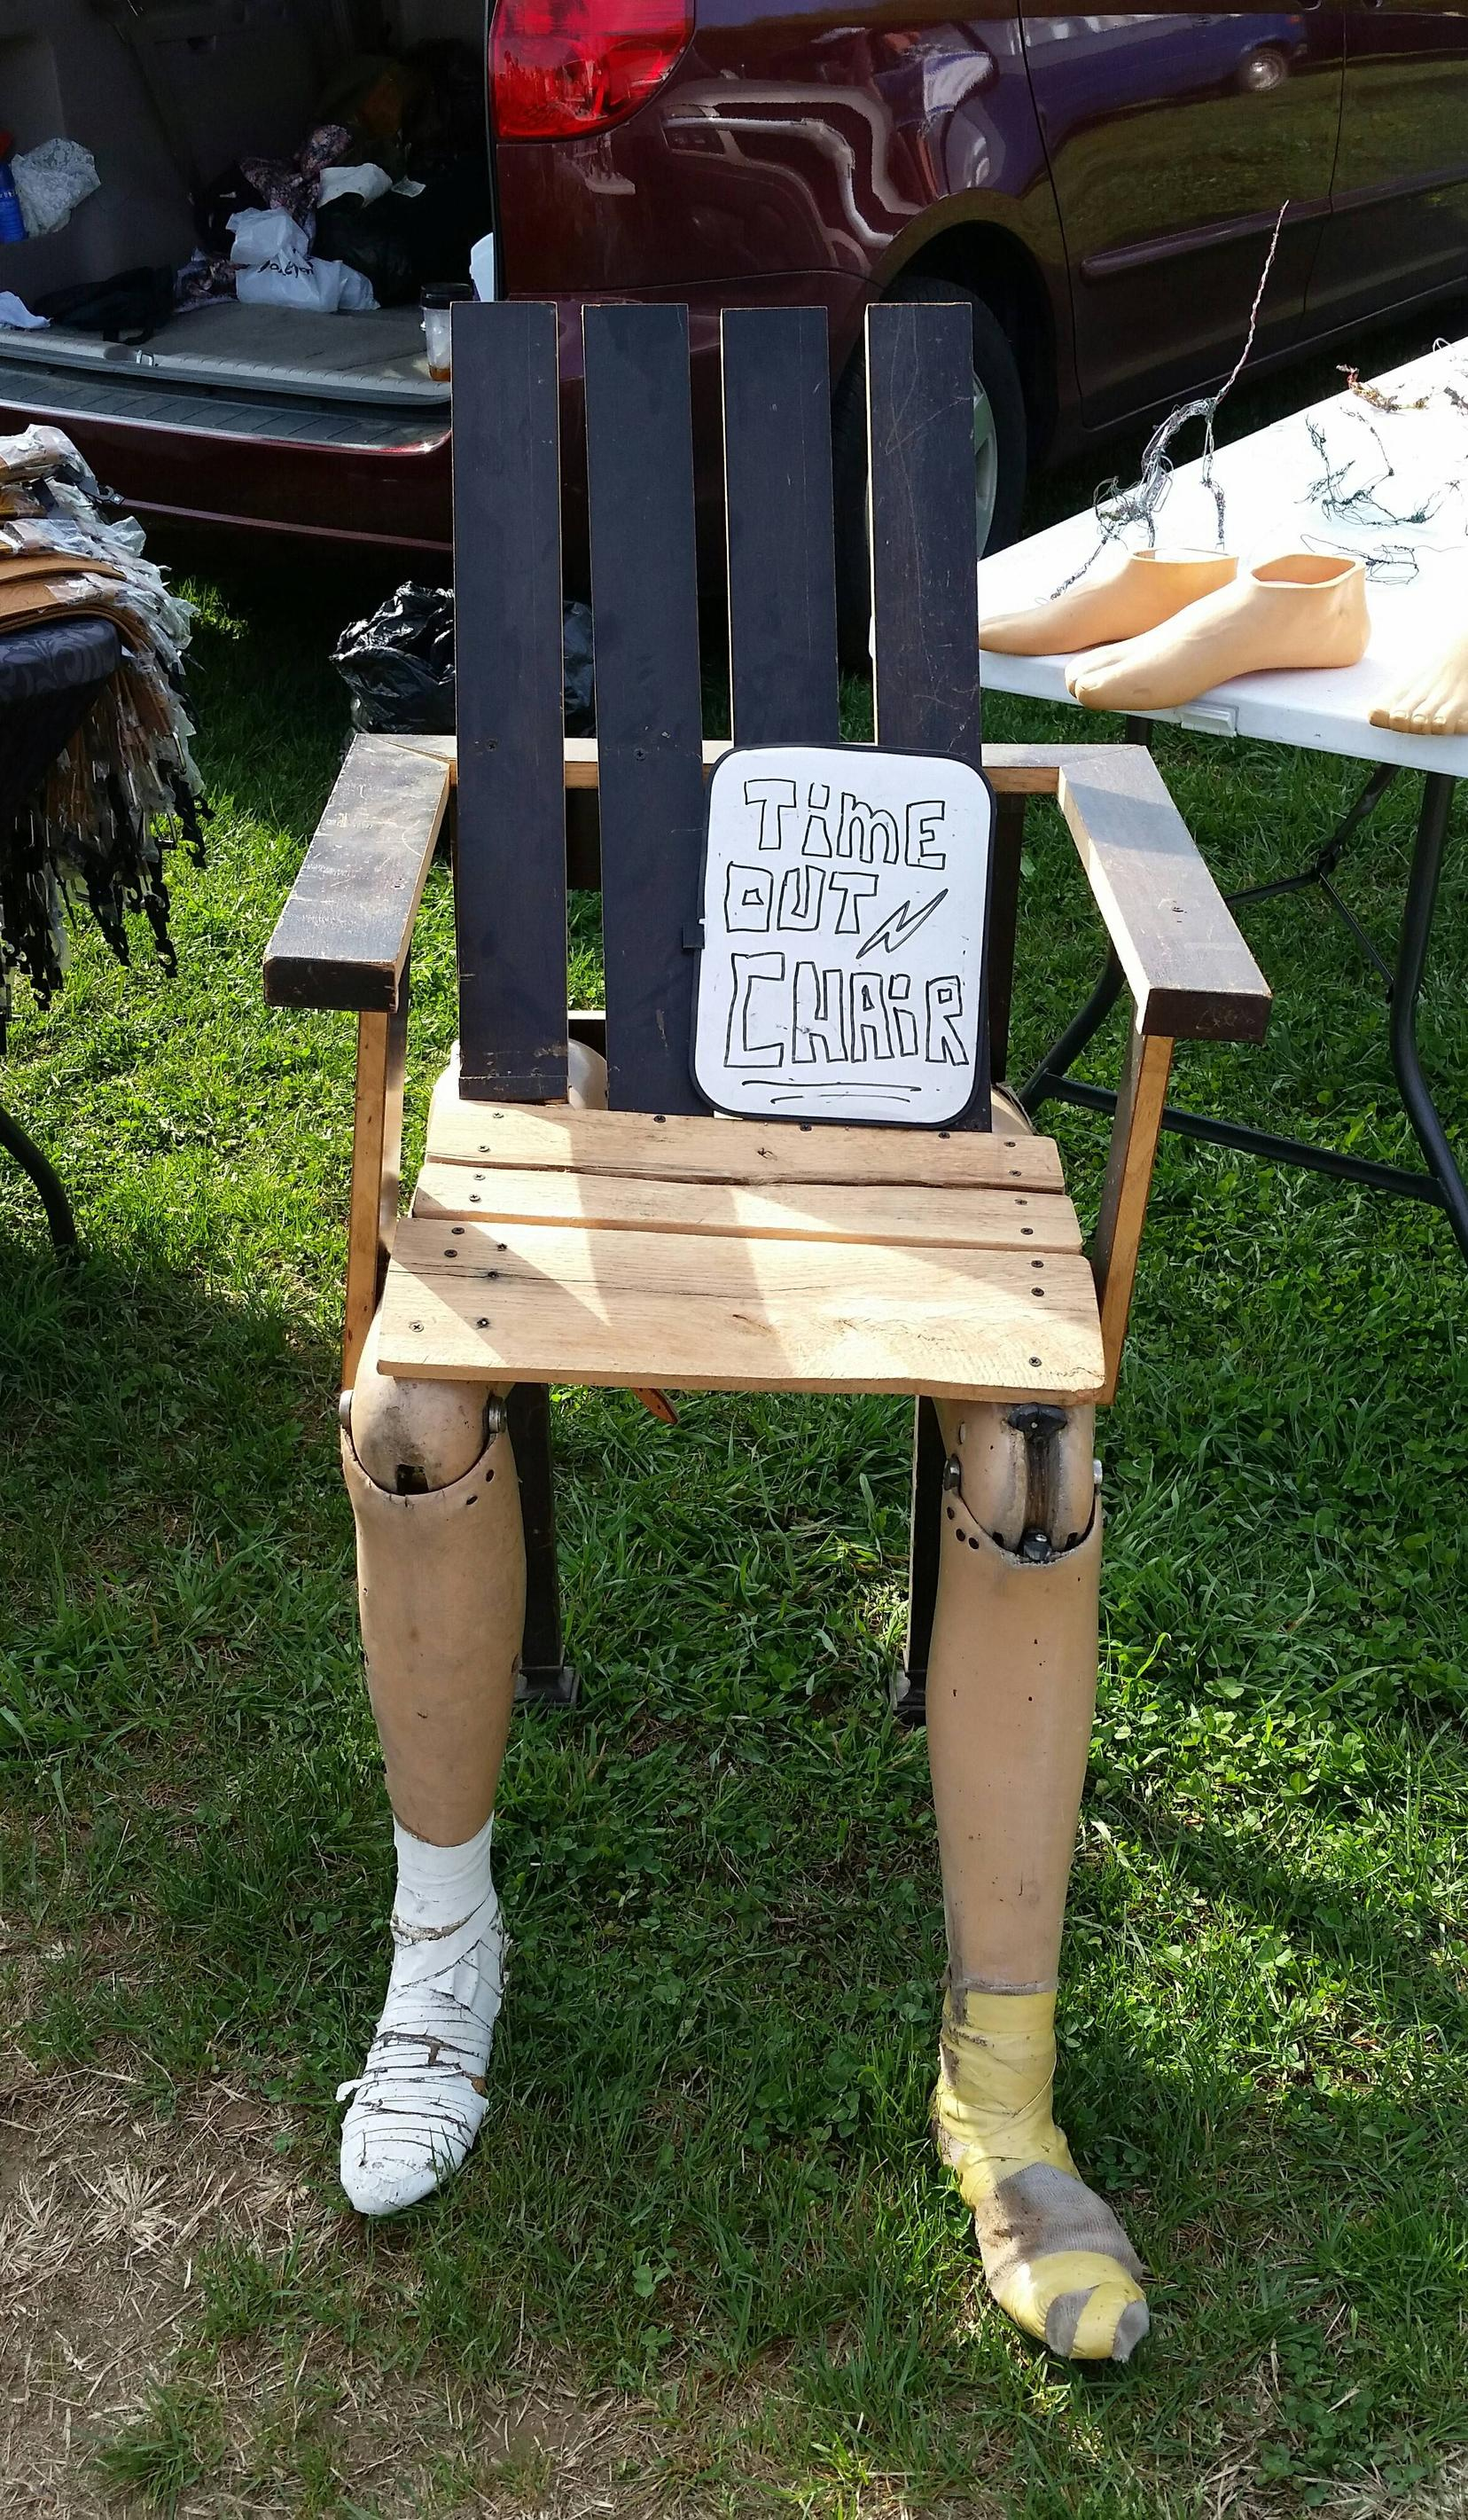 Time-Out Chair